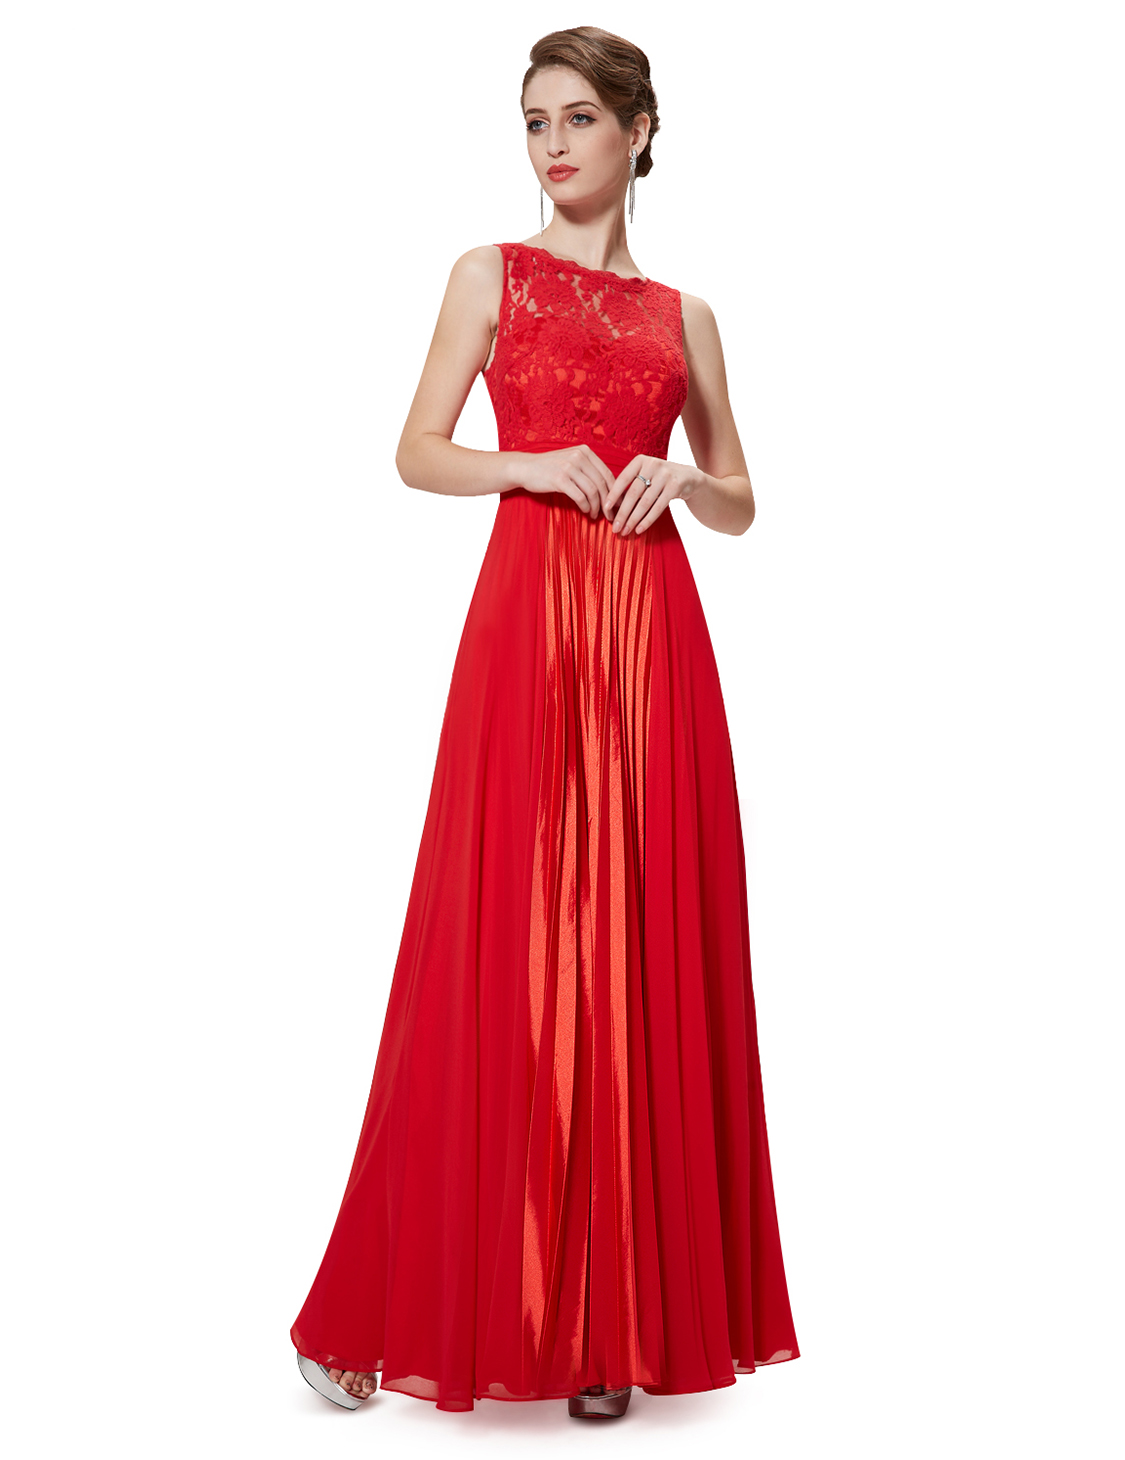 Womens Lace Bridesmaid Dresses Formal Evening Prom Ball Gown 08352